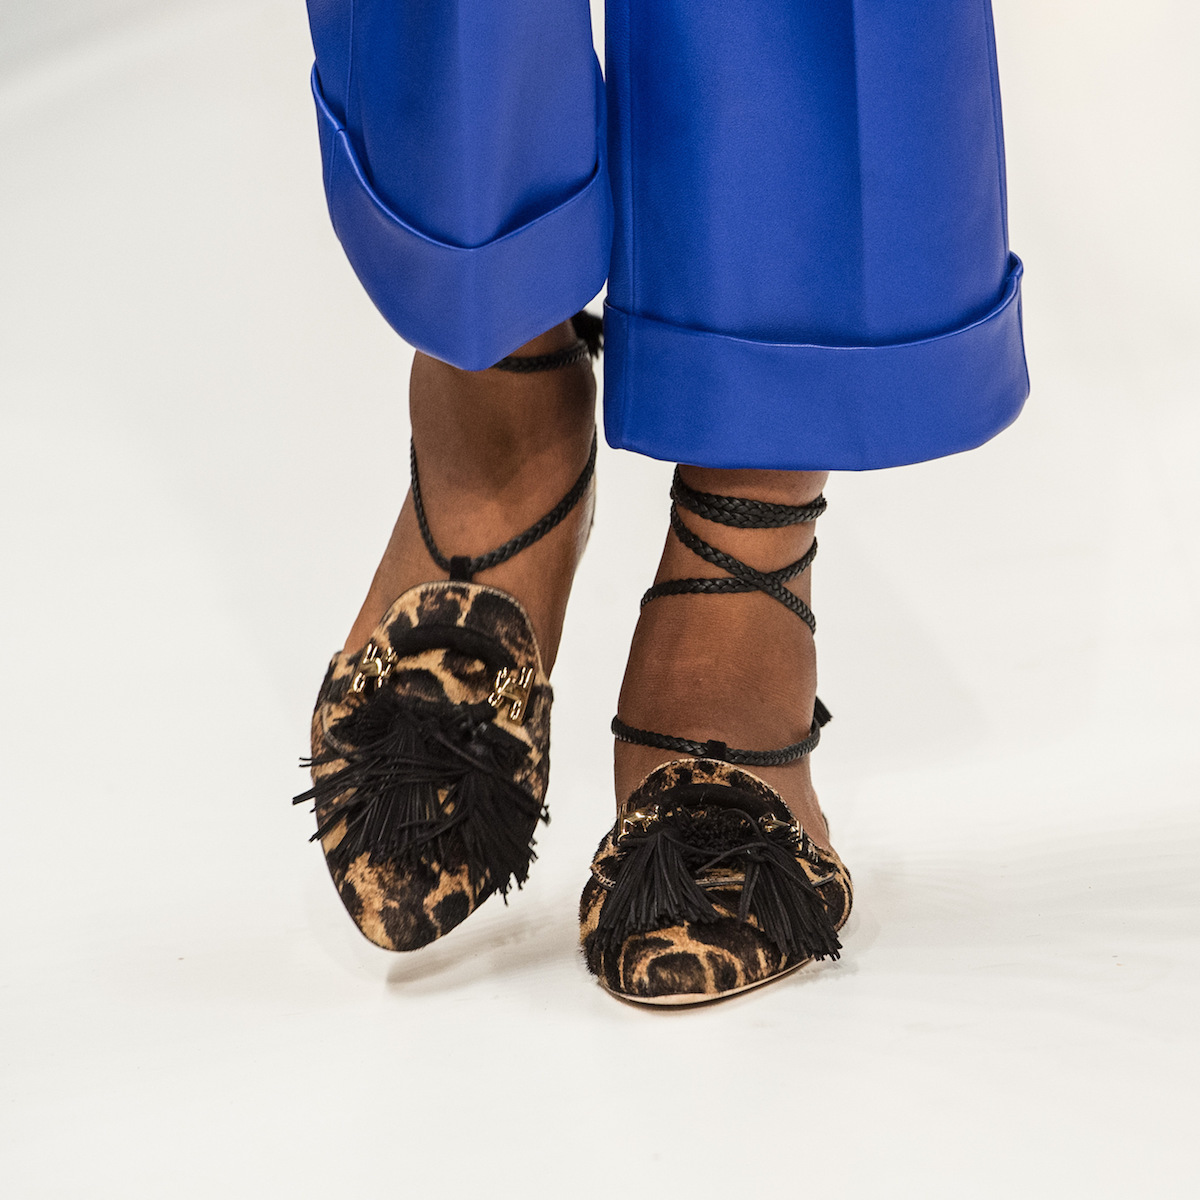 close-up-shoes-12.jpg